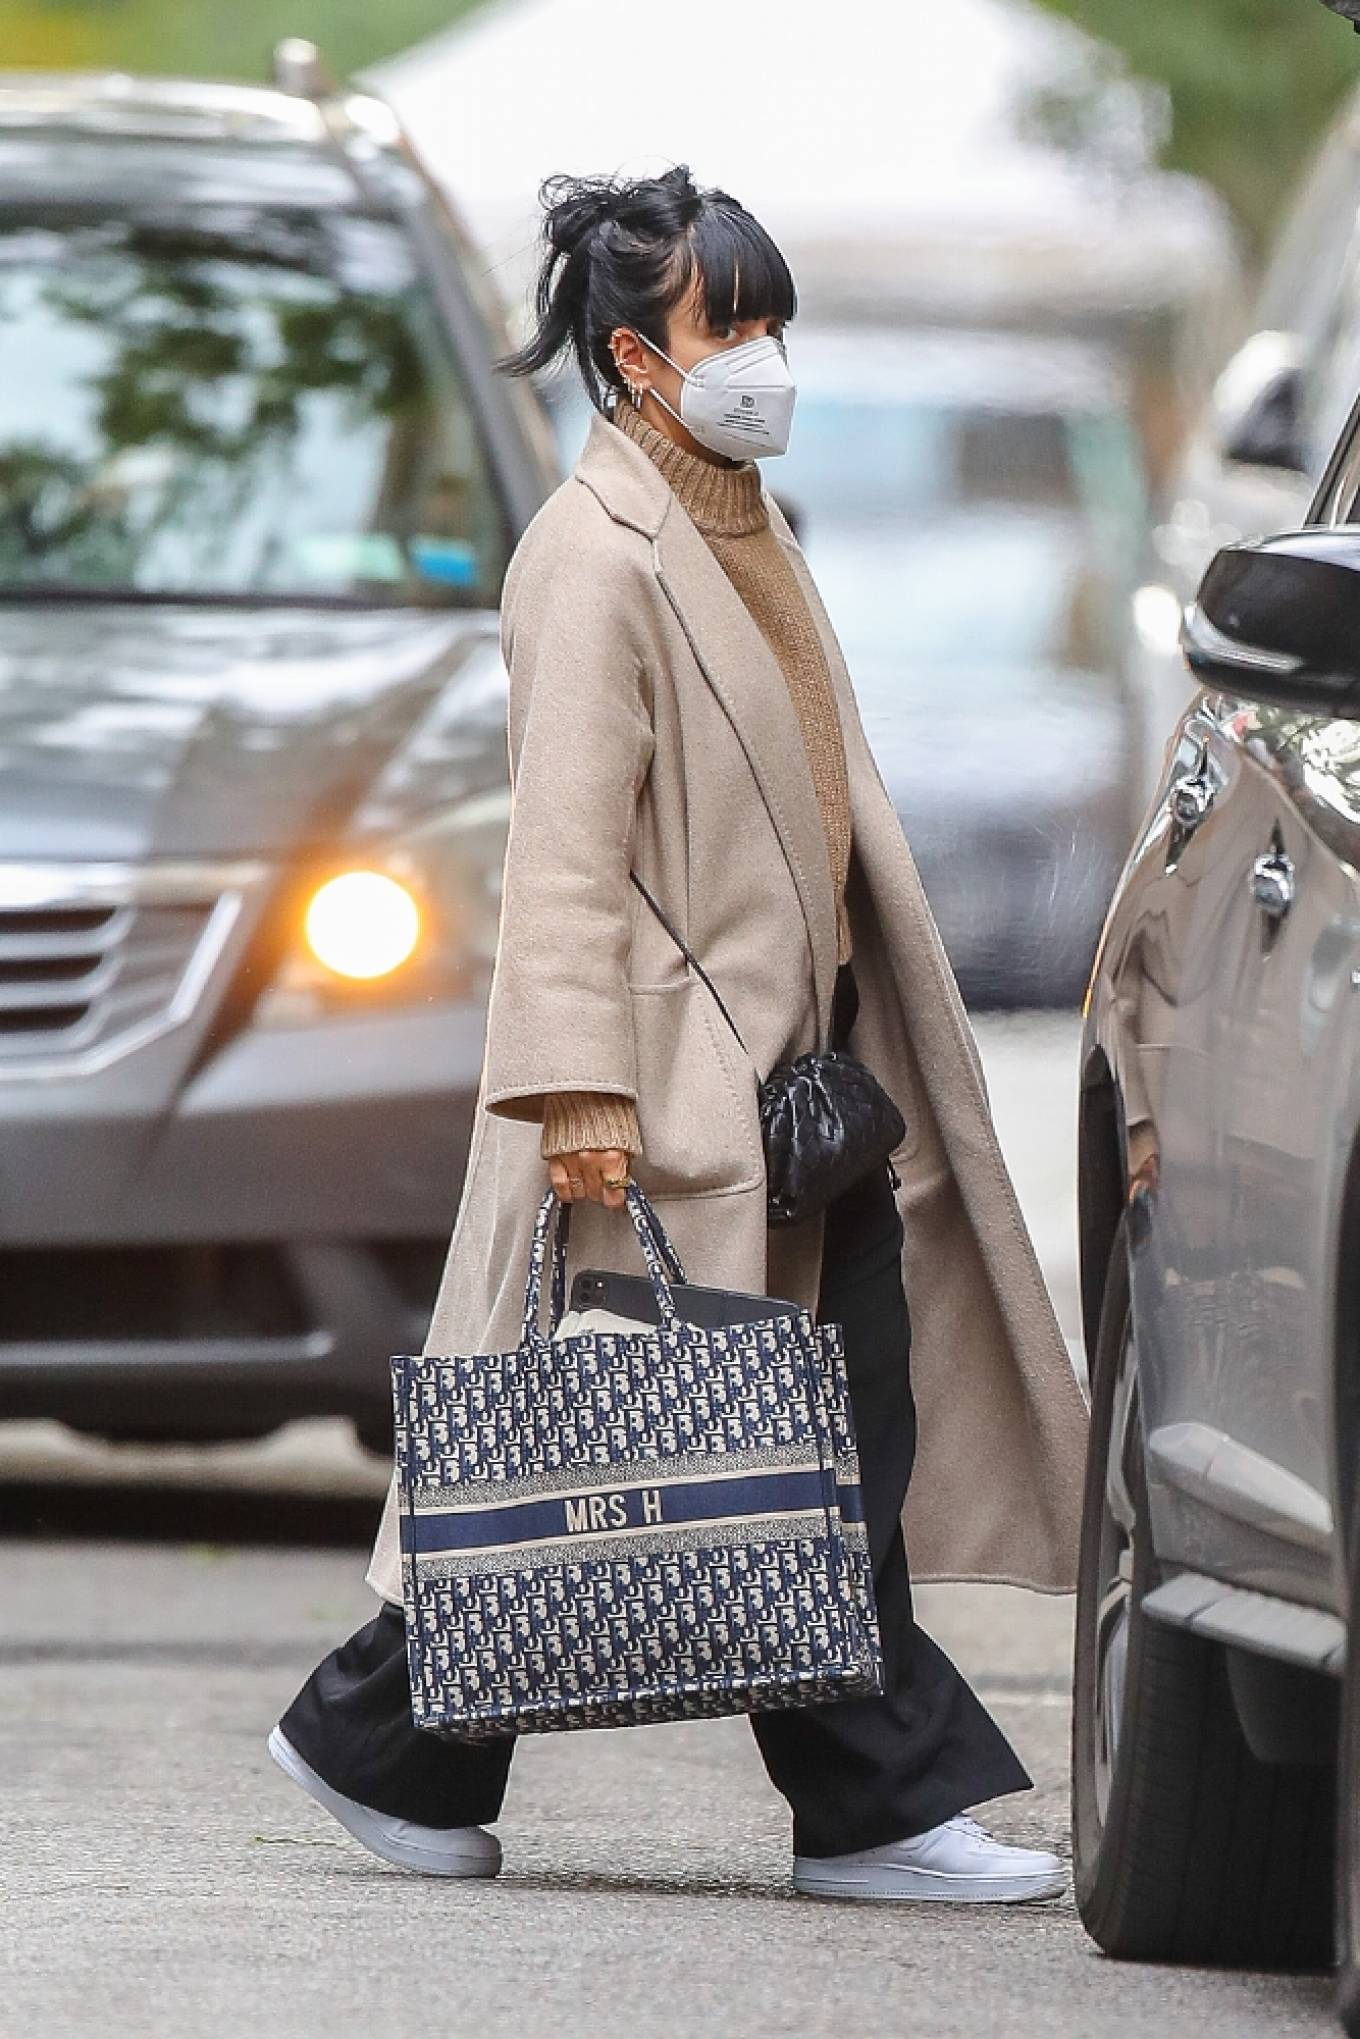 Lily Allen 2020 : Lily Allen – Carrying a Dior bag with -09